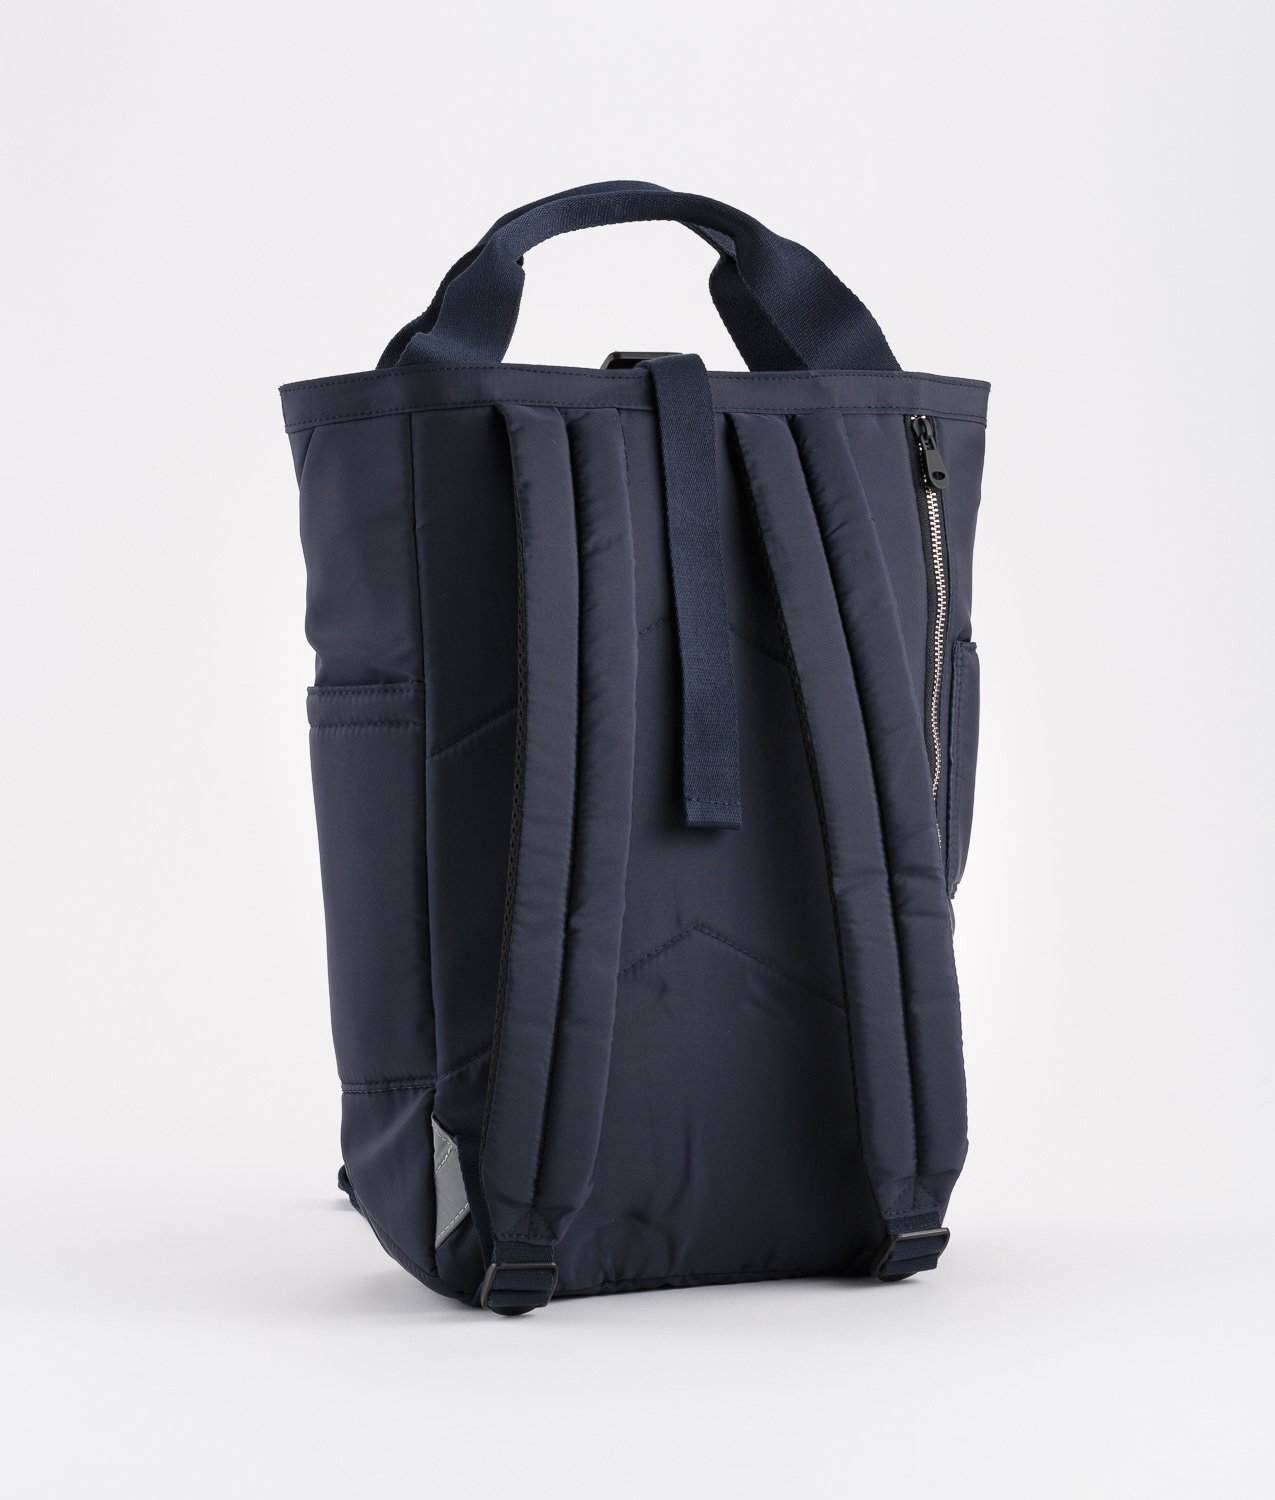 ALPHA TOTE BACKPACK